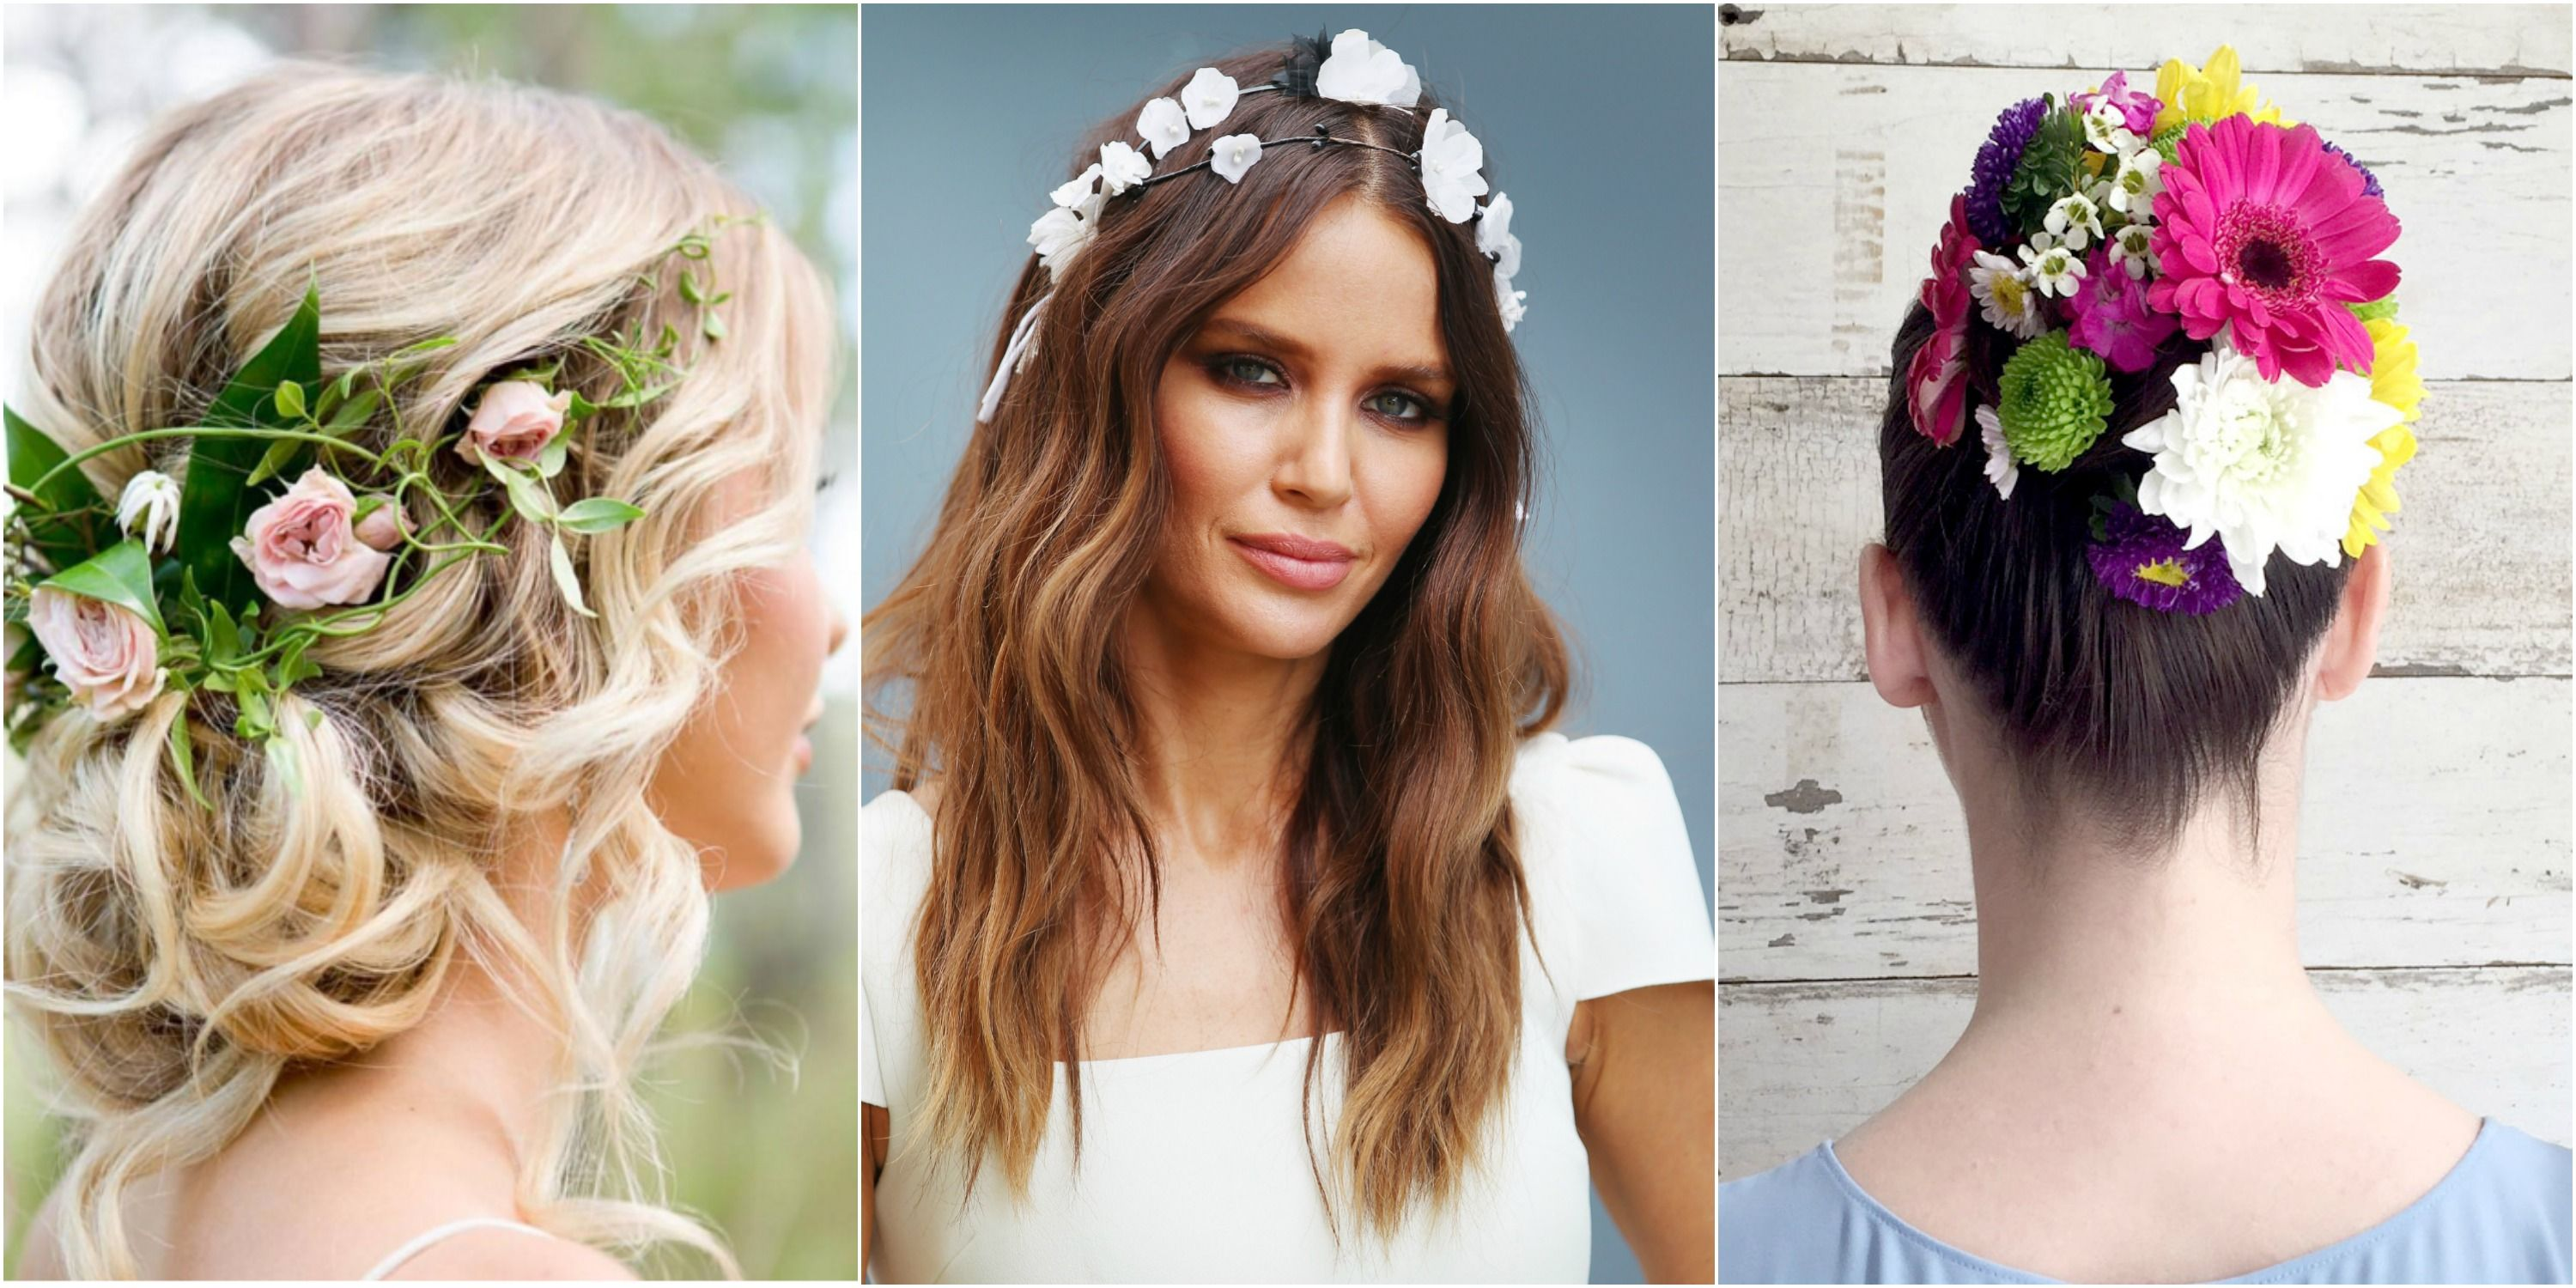 12 pretty flower crowns and floral hairstyles flower hairstyles izmirmasajfo